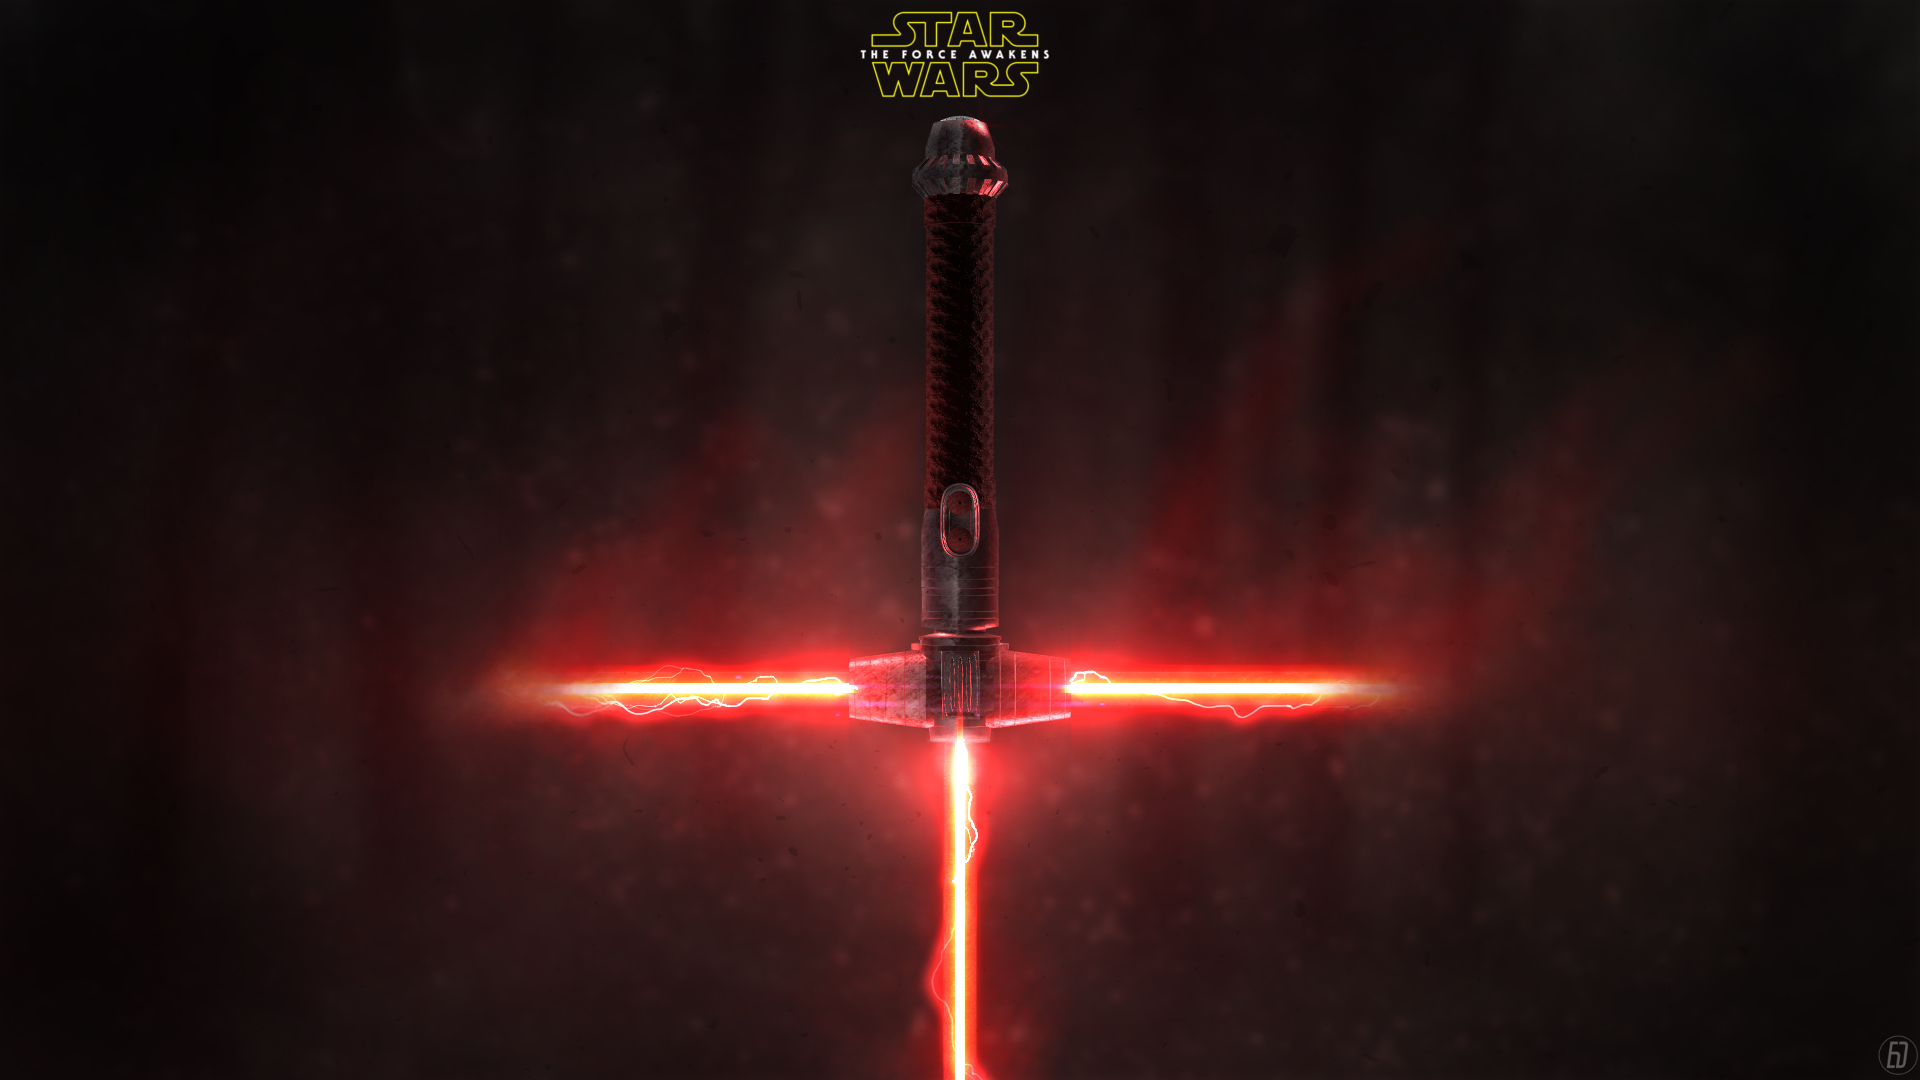 Star Wars The Force Awakens New Lightsaber By Spiritdsgn On Deviantart